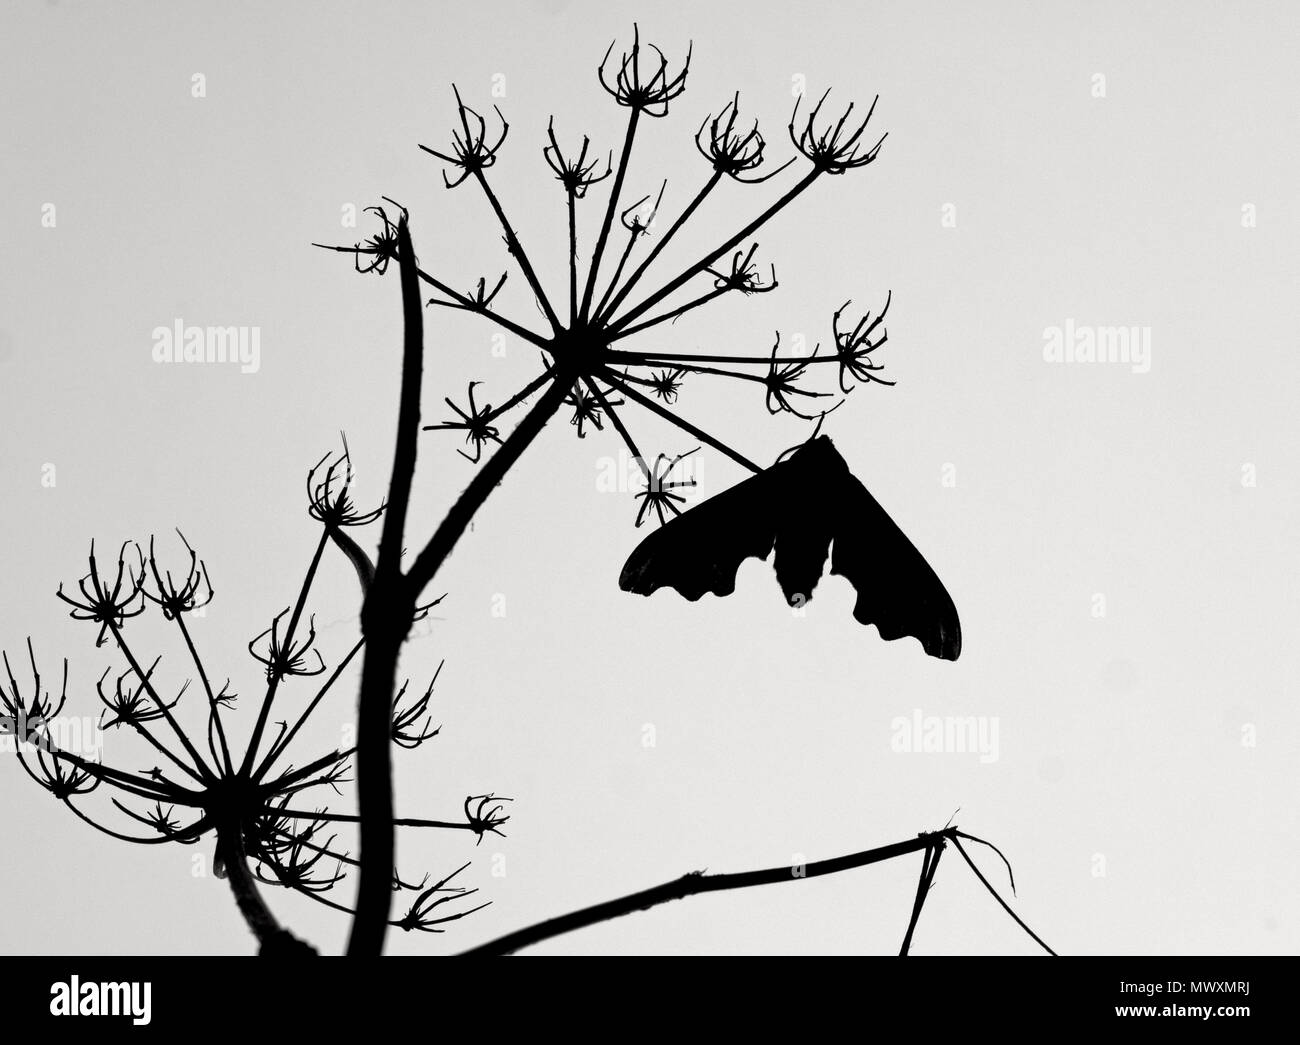 Lime Hawk-moth Mimas tiliae sillhouette - Stock Image